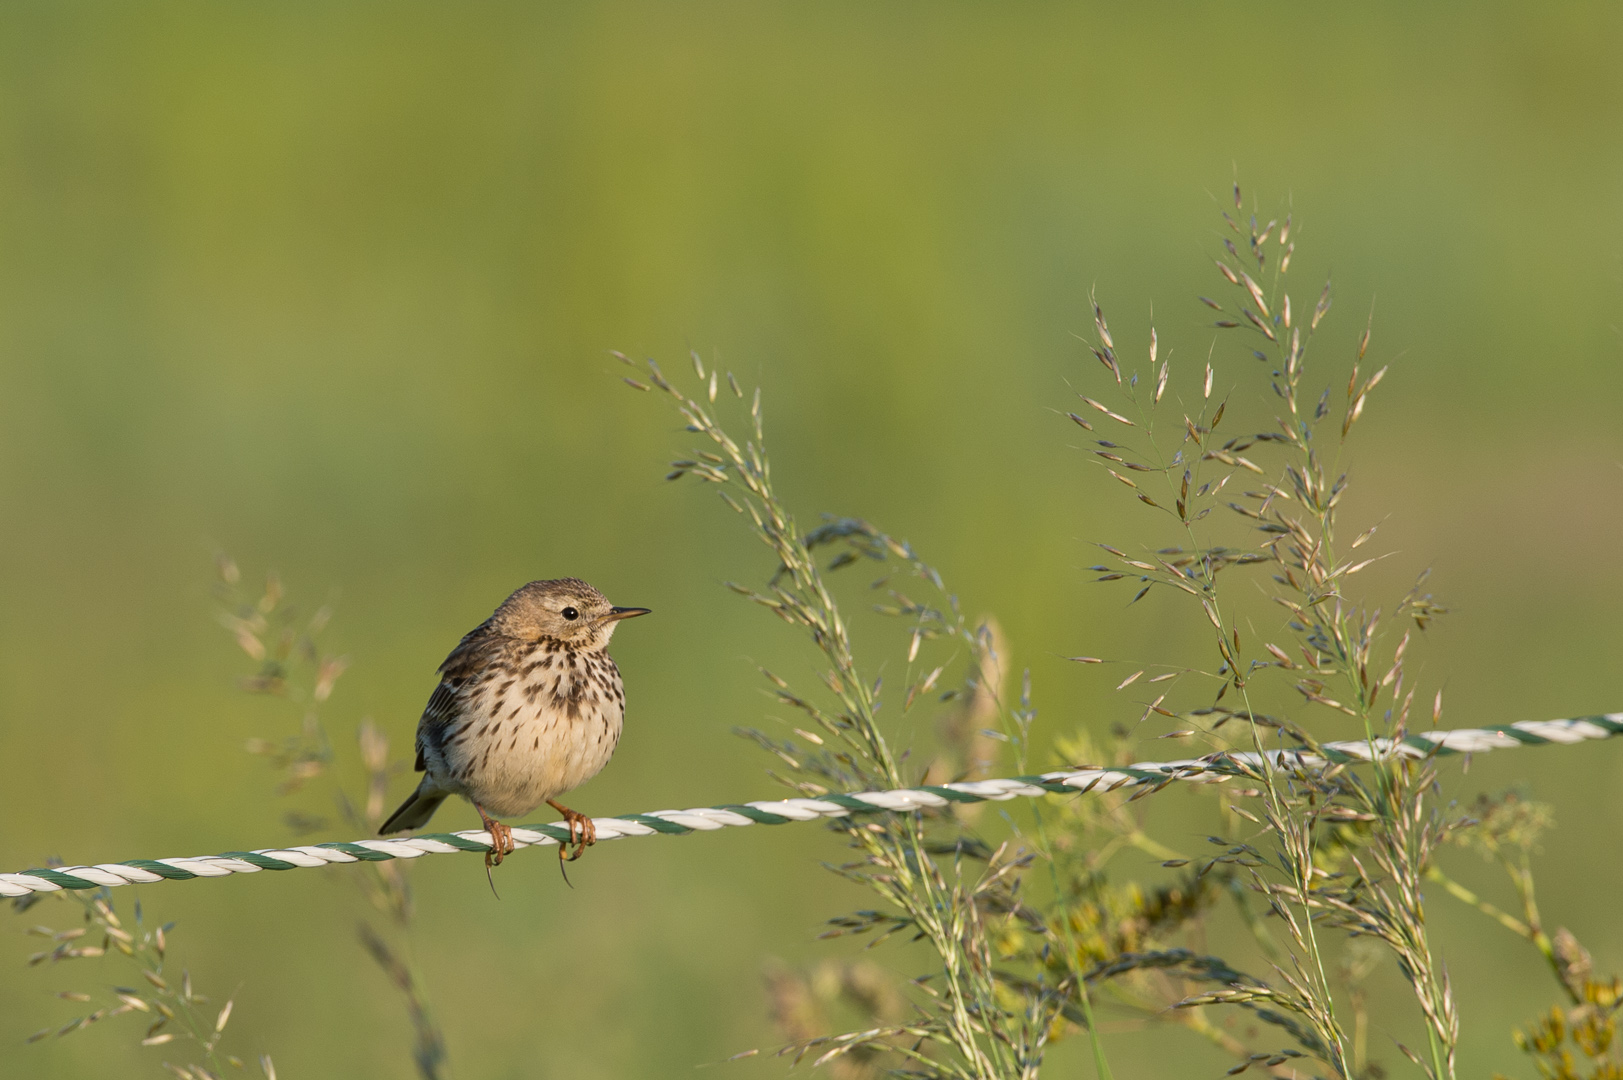 Anthus pratensis, Meadow pipit, graspieper